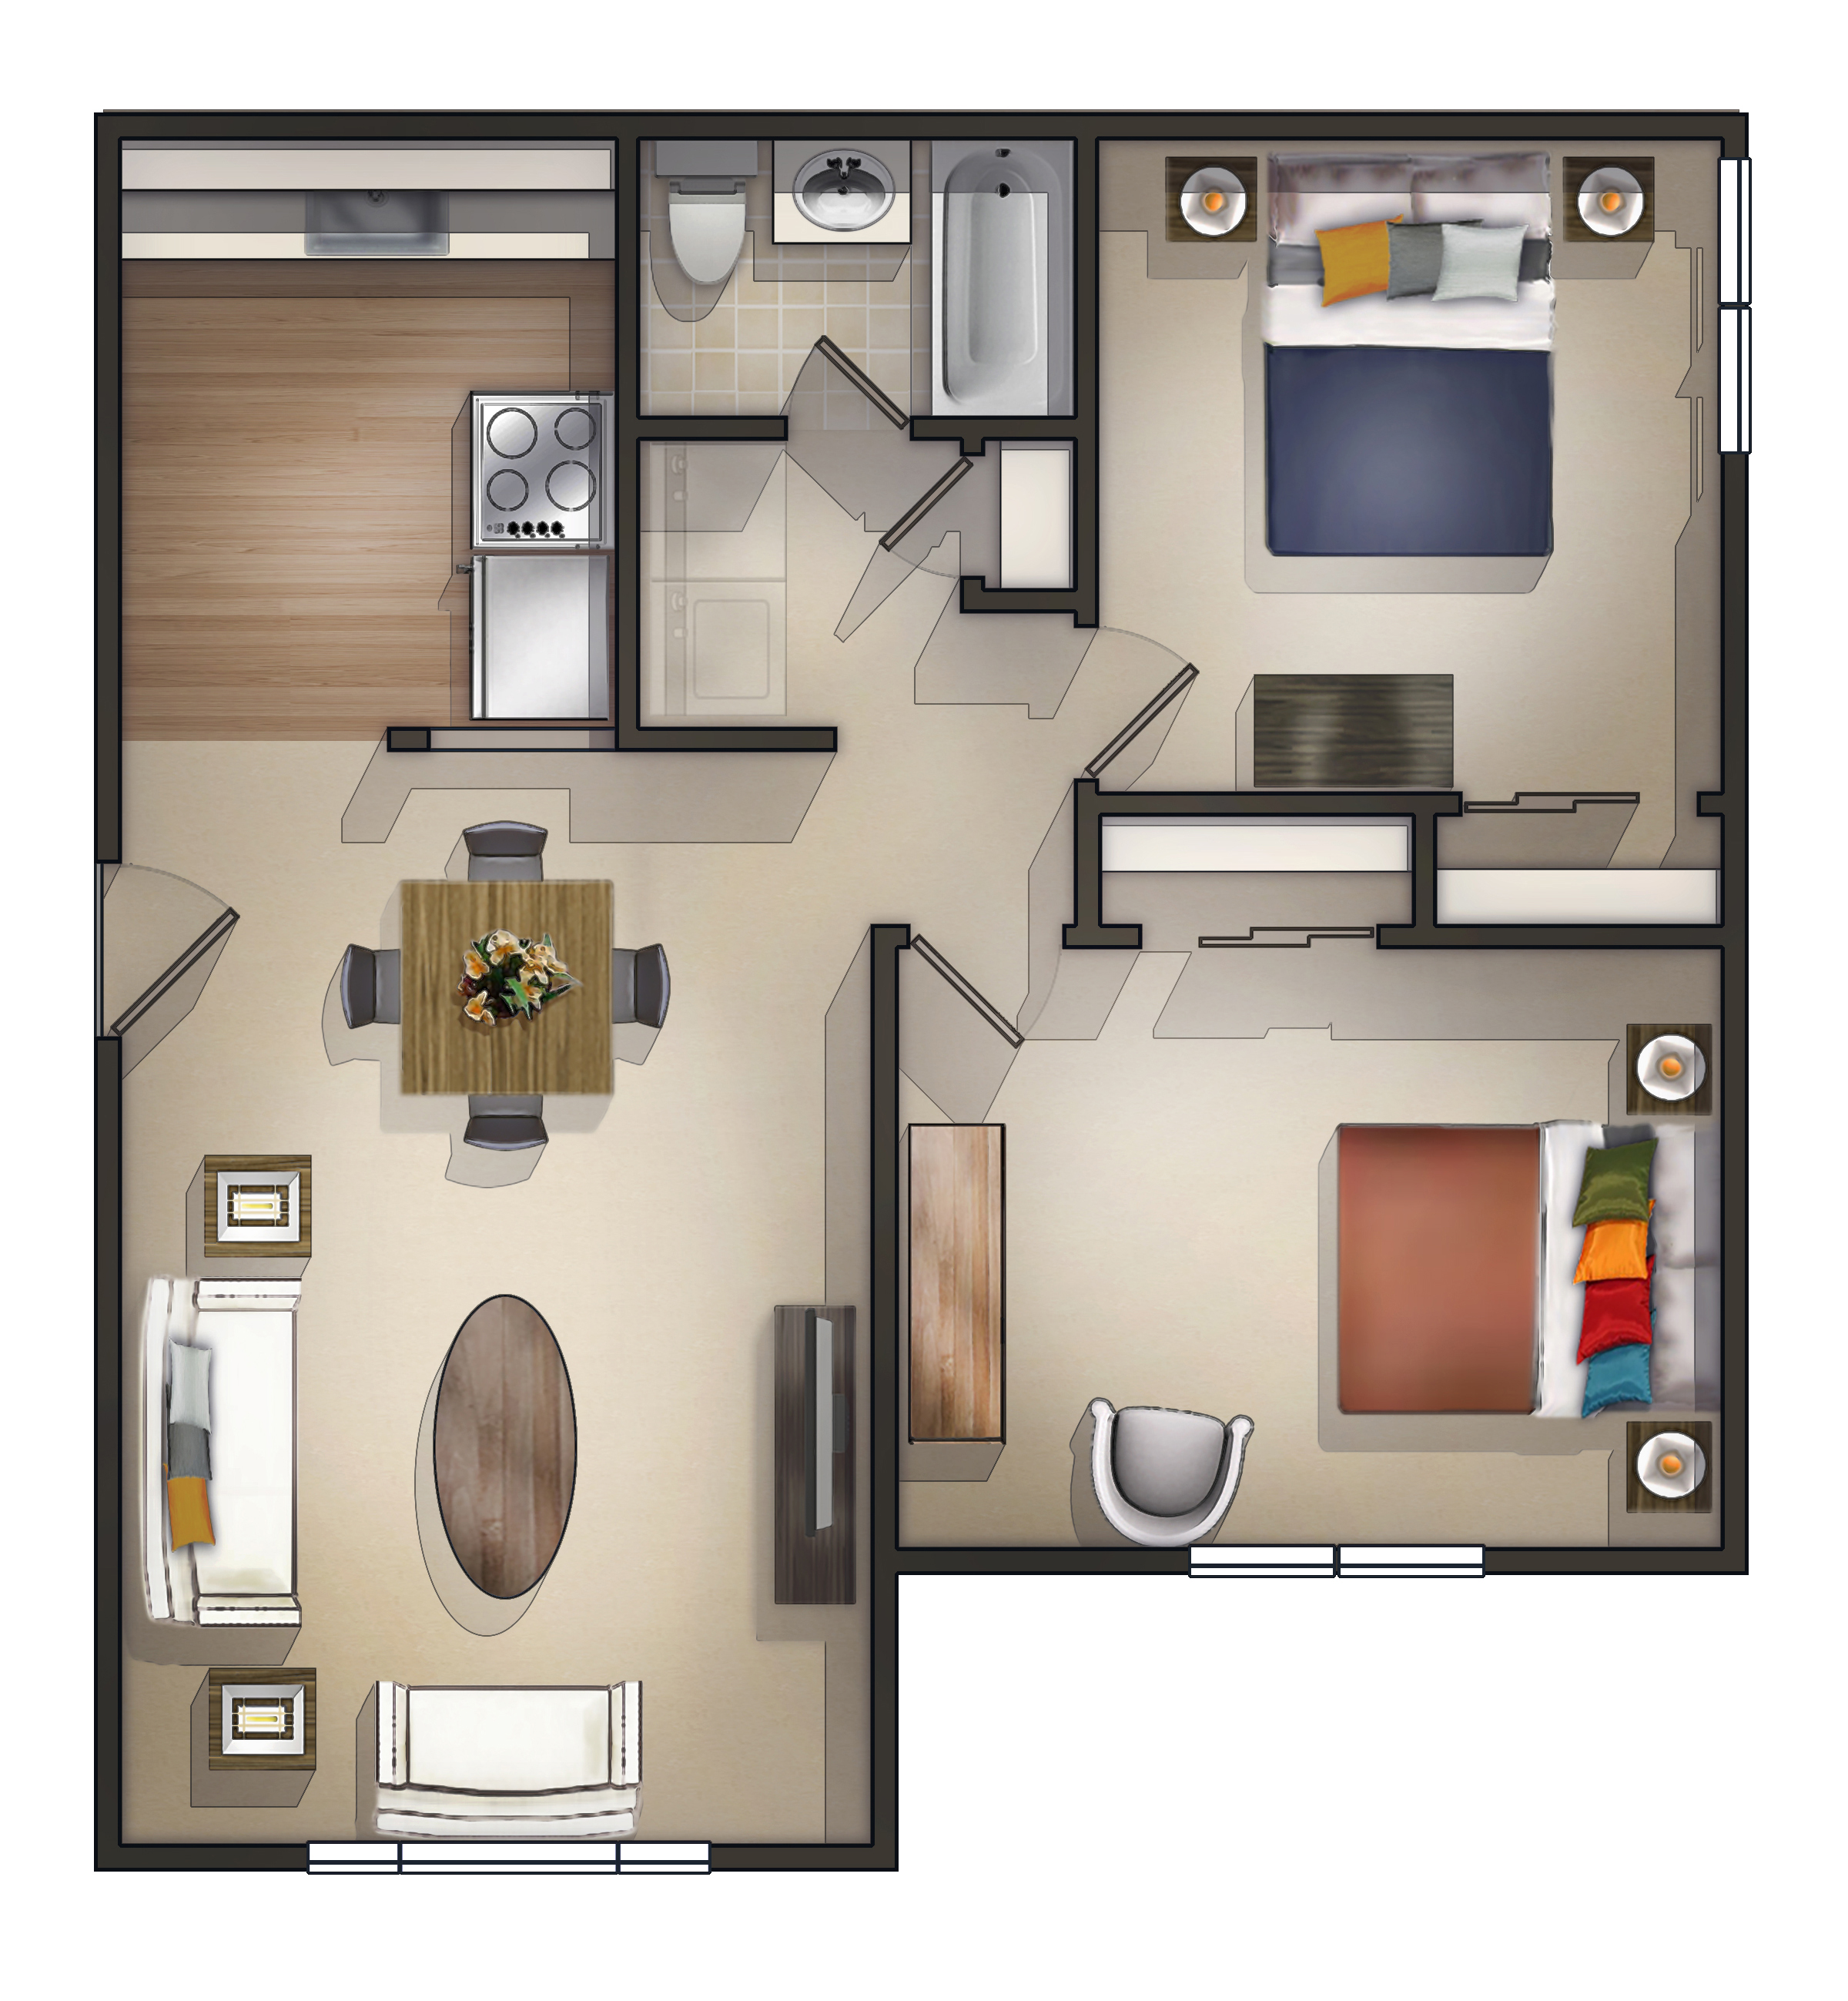 3 Bedroom Apartment Floor Plans Pdf